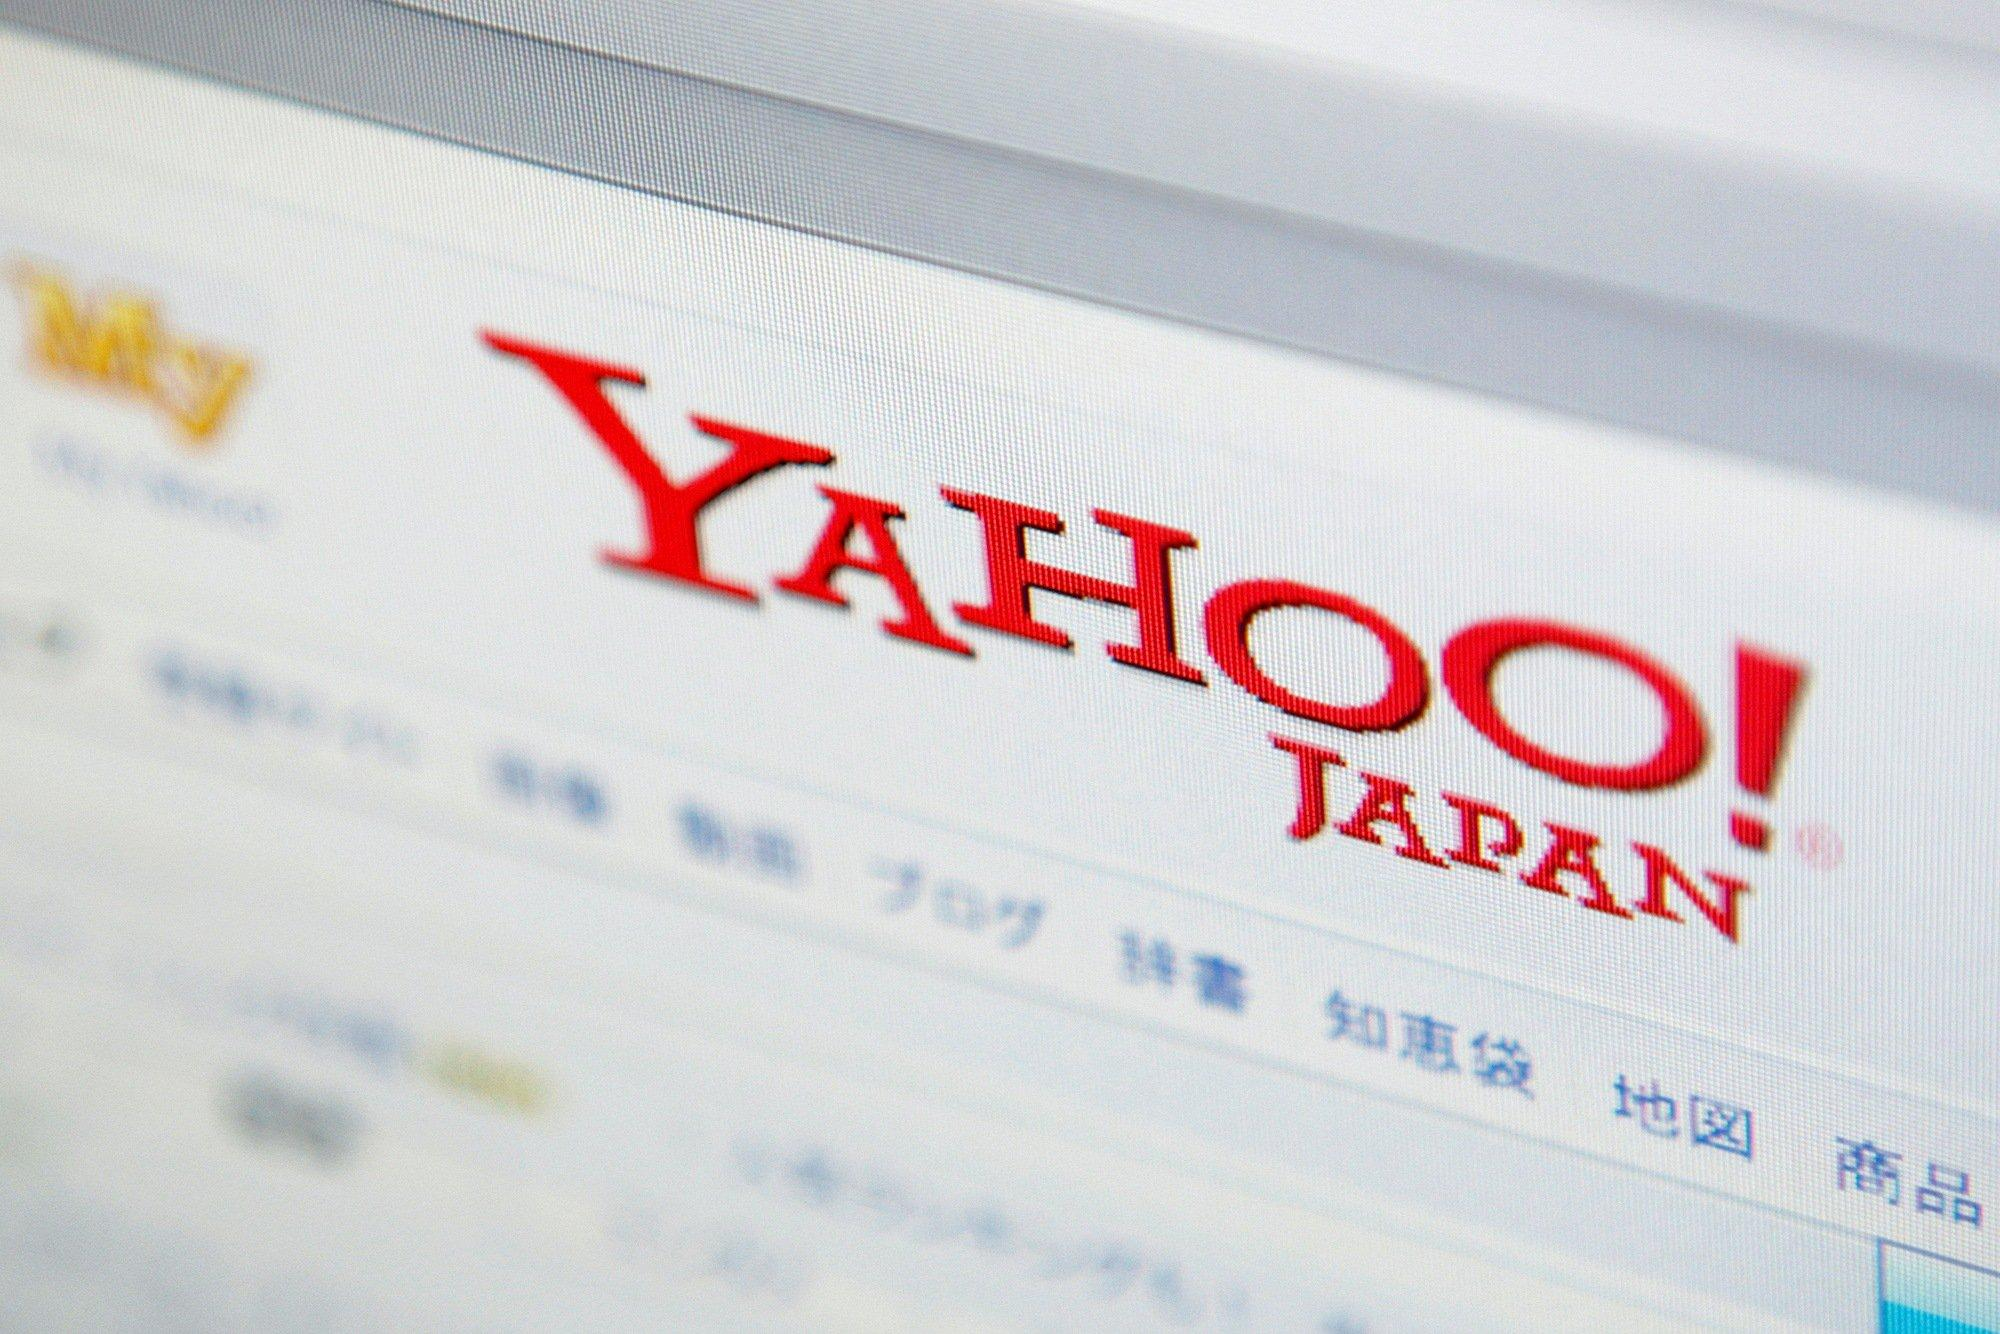 Yahoo! Japan Enters Crypto Despite Bear Market, Plans May 2019 Launch of Bitcoin Exchange